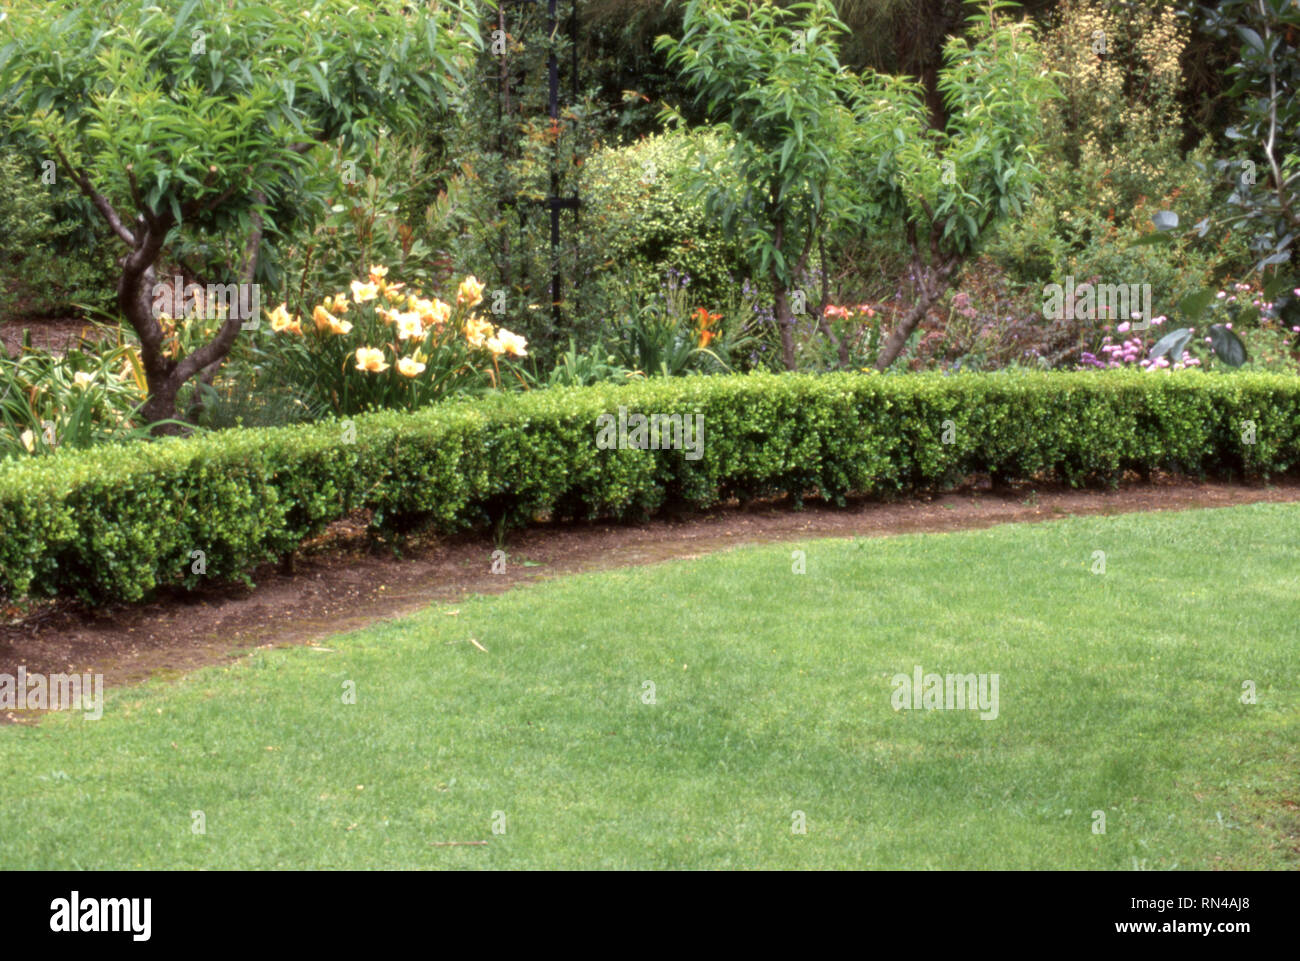 NEW SOUTH WALES GARDEN WITH HEDGING (BOX) AND DAY LILIES BORDERING LAWN AREA, NEW SOUTH WALES, AUSTRALIA. - Stock Image